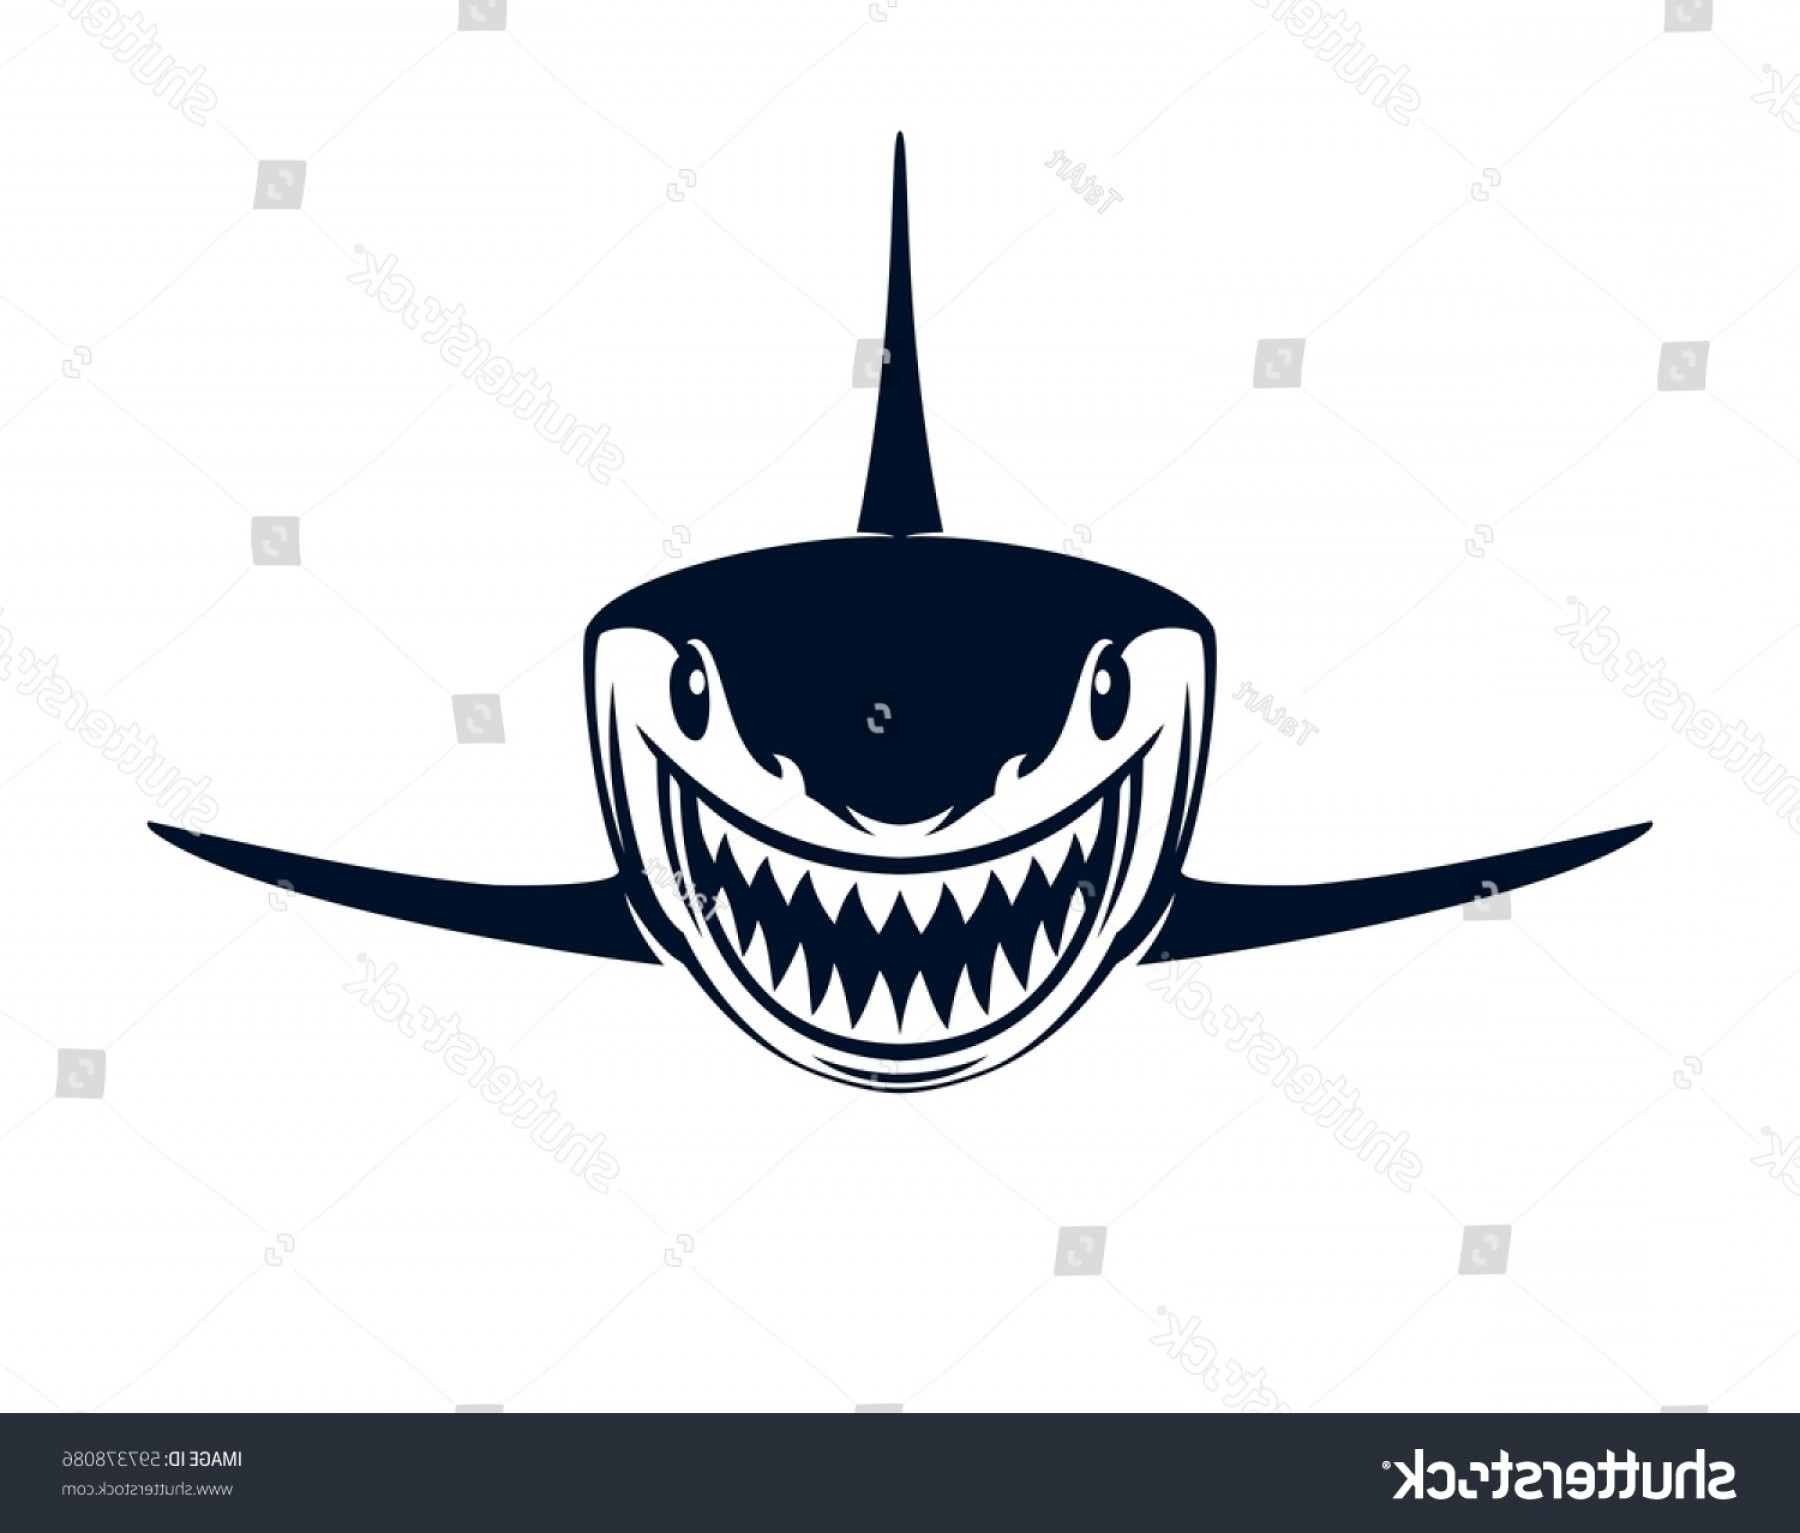 Bull Shark Jaws Vector Art: Black White Shark Open Jaws On